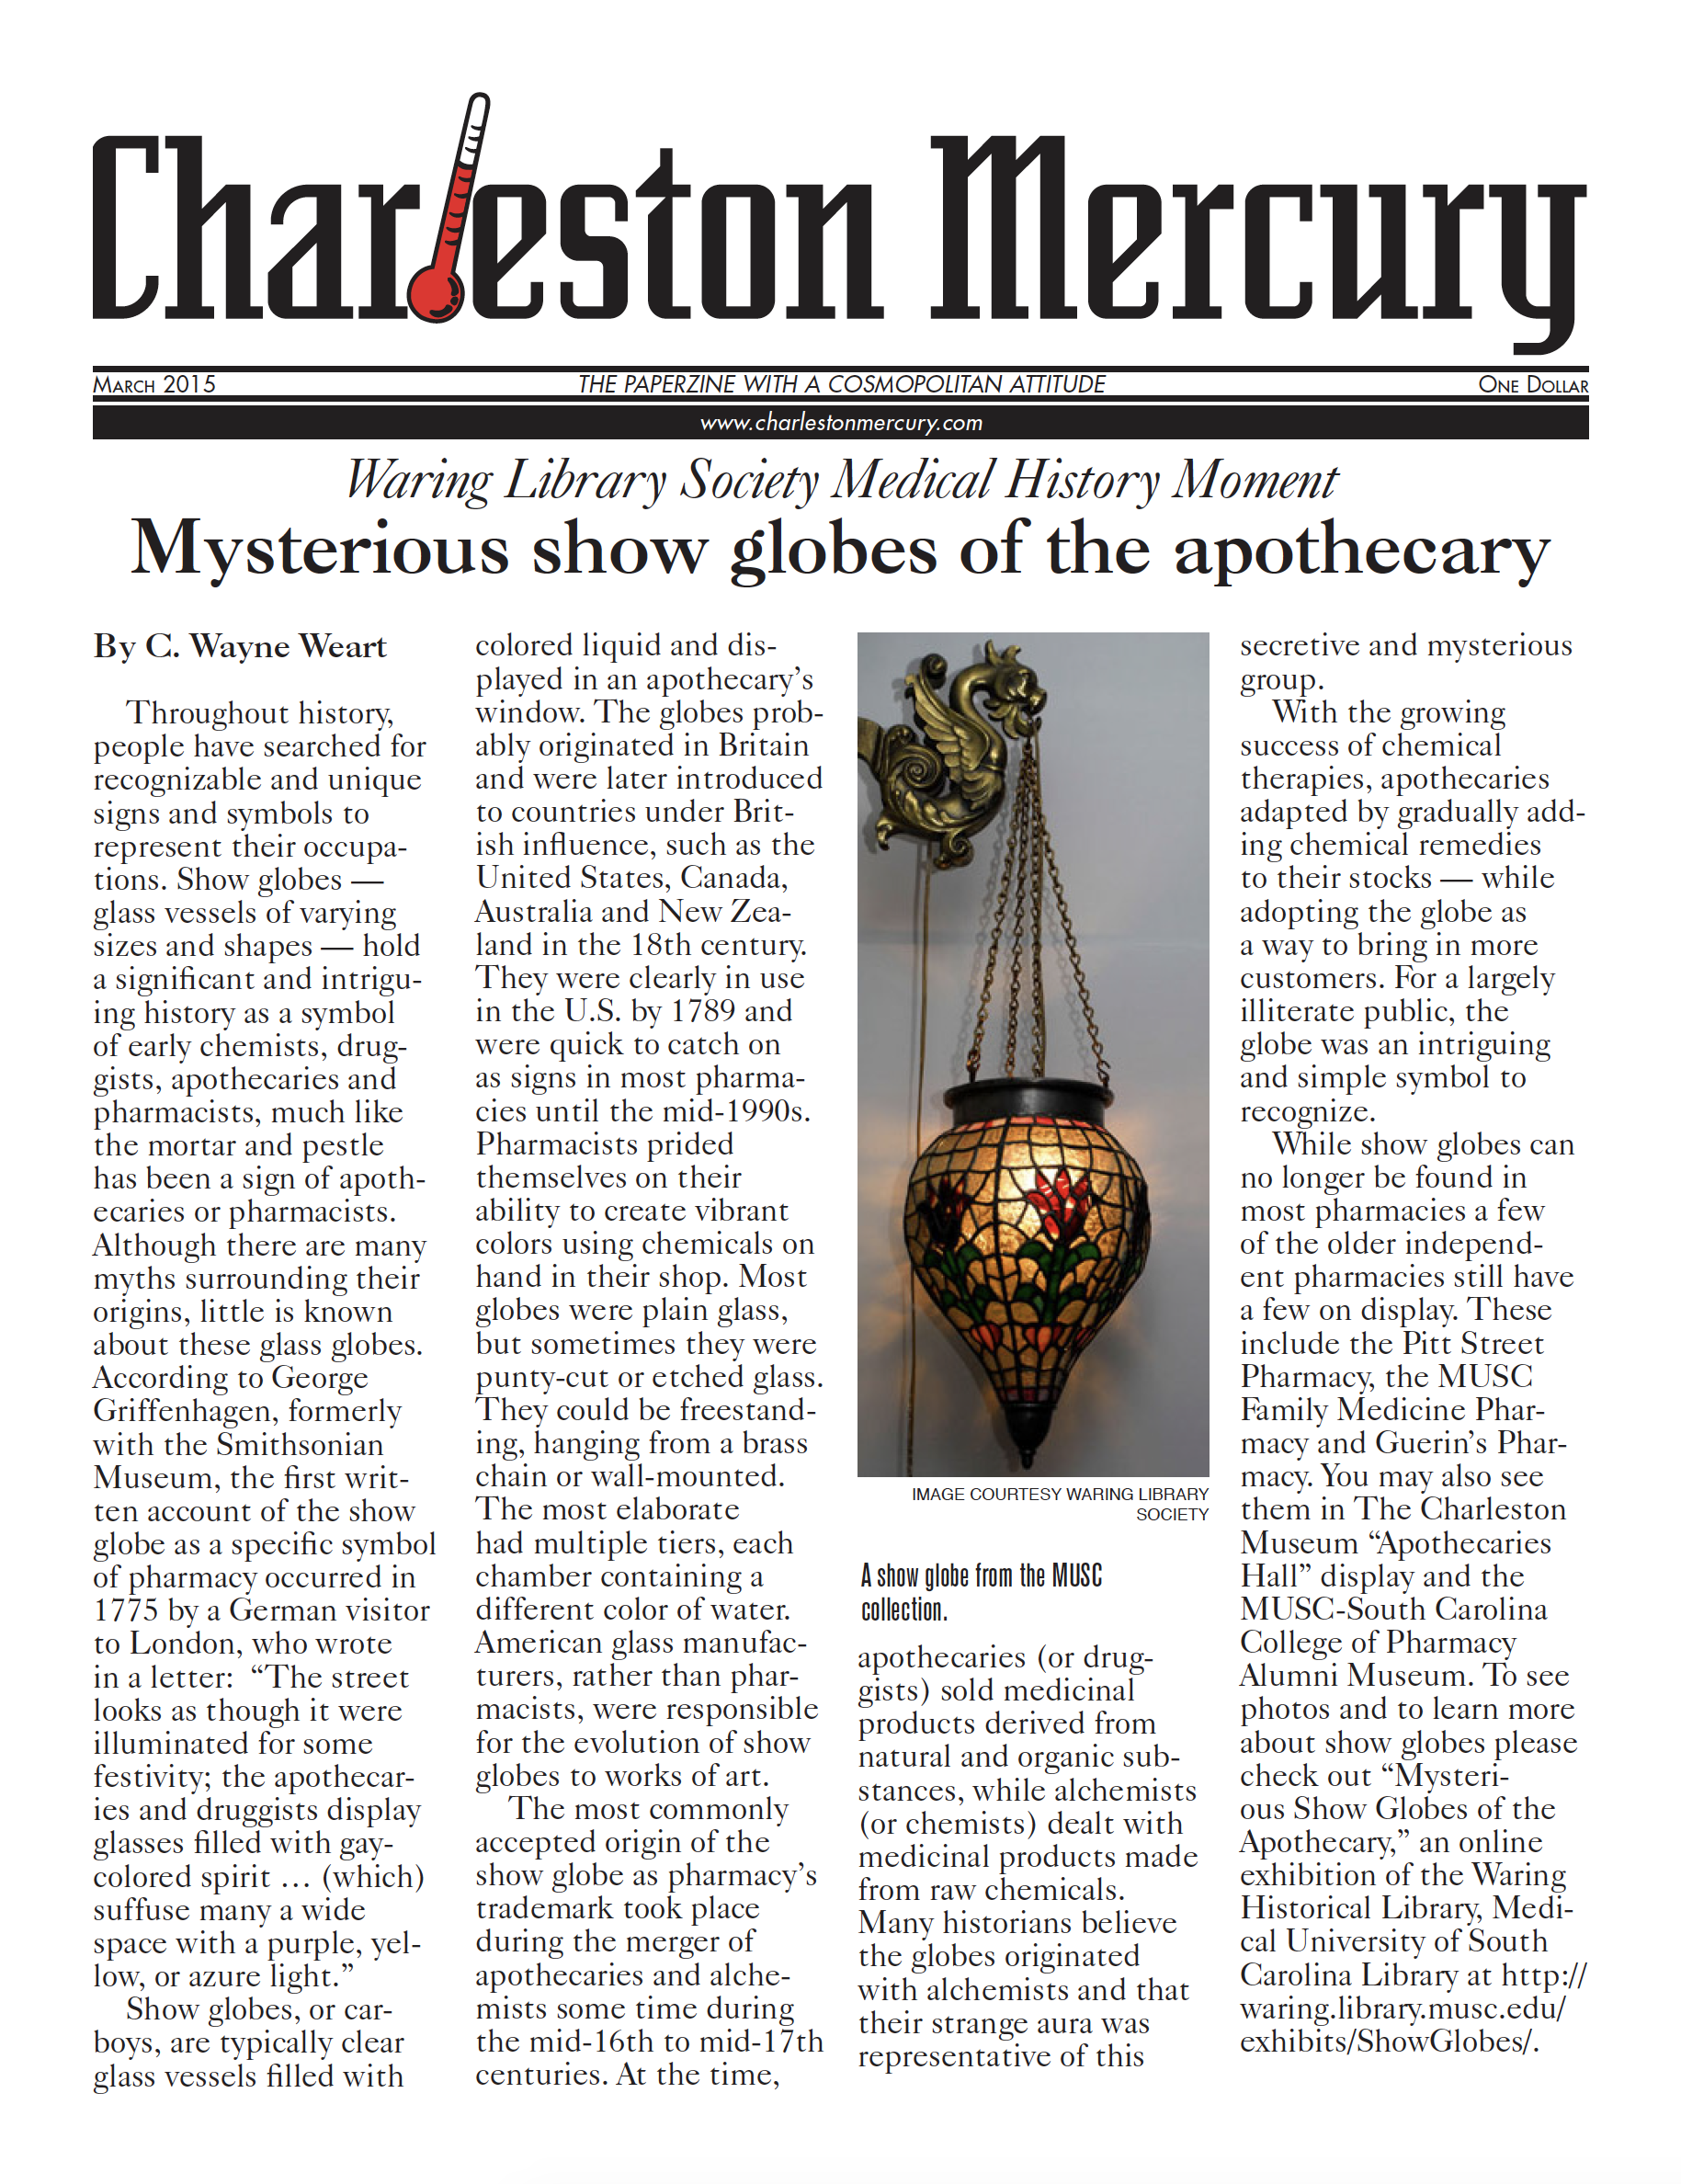 Charleston Mercury, March 2015